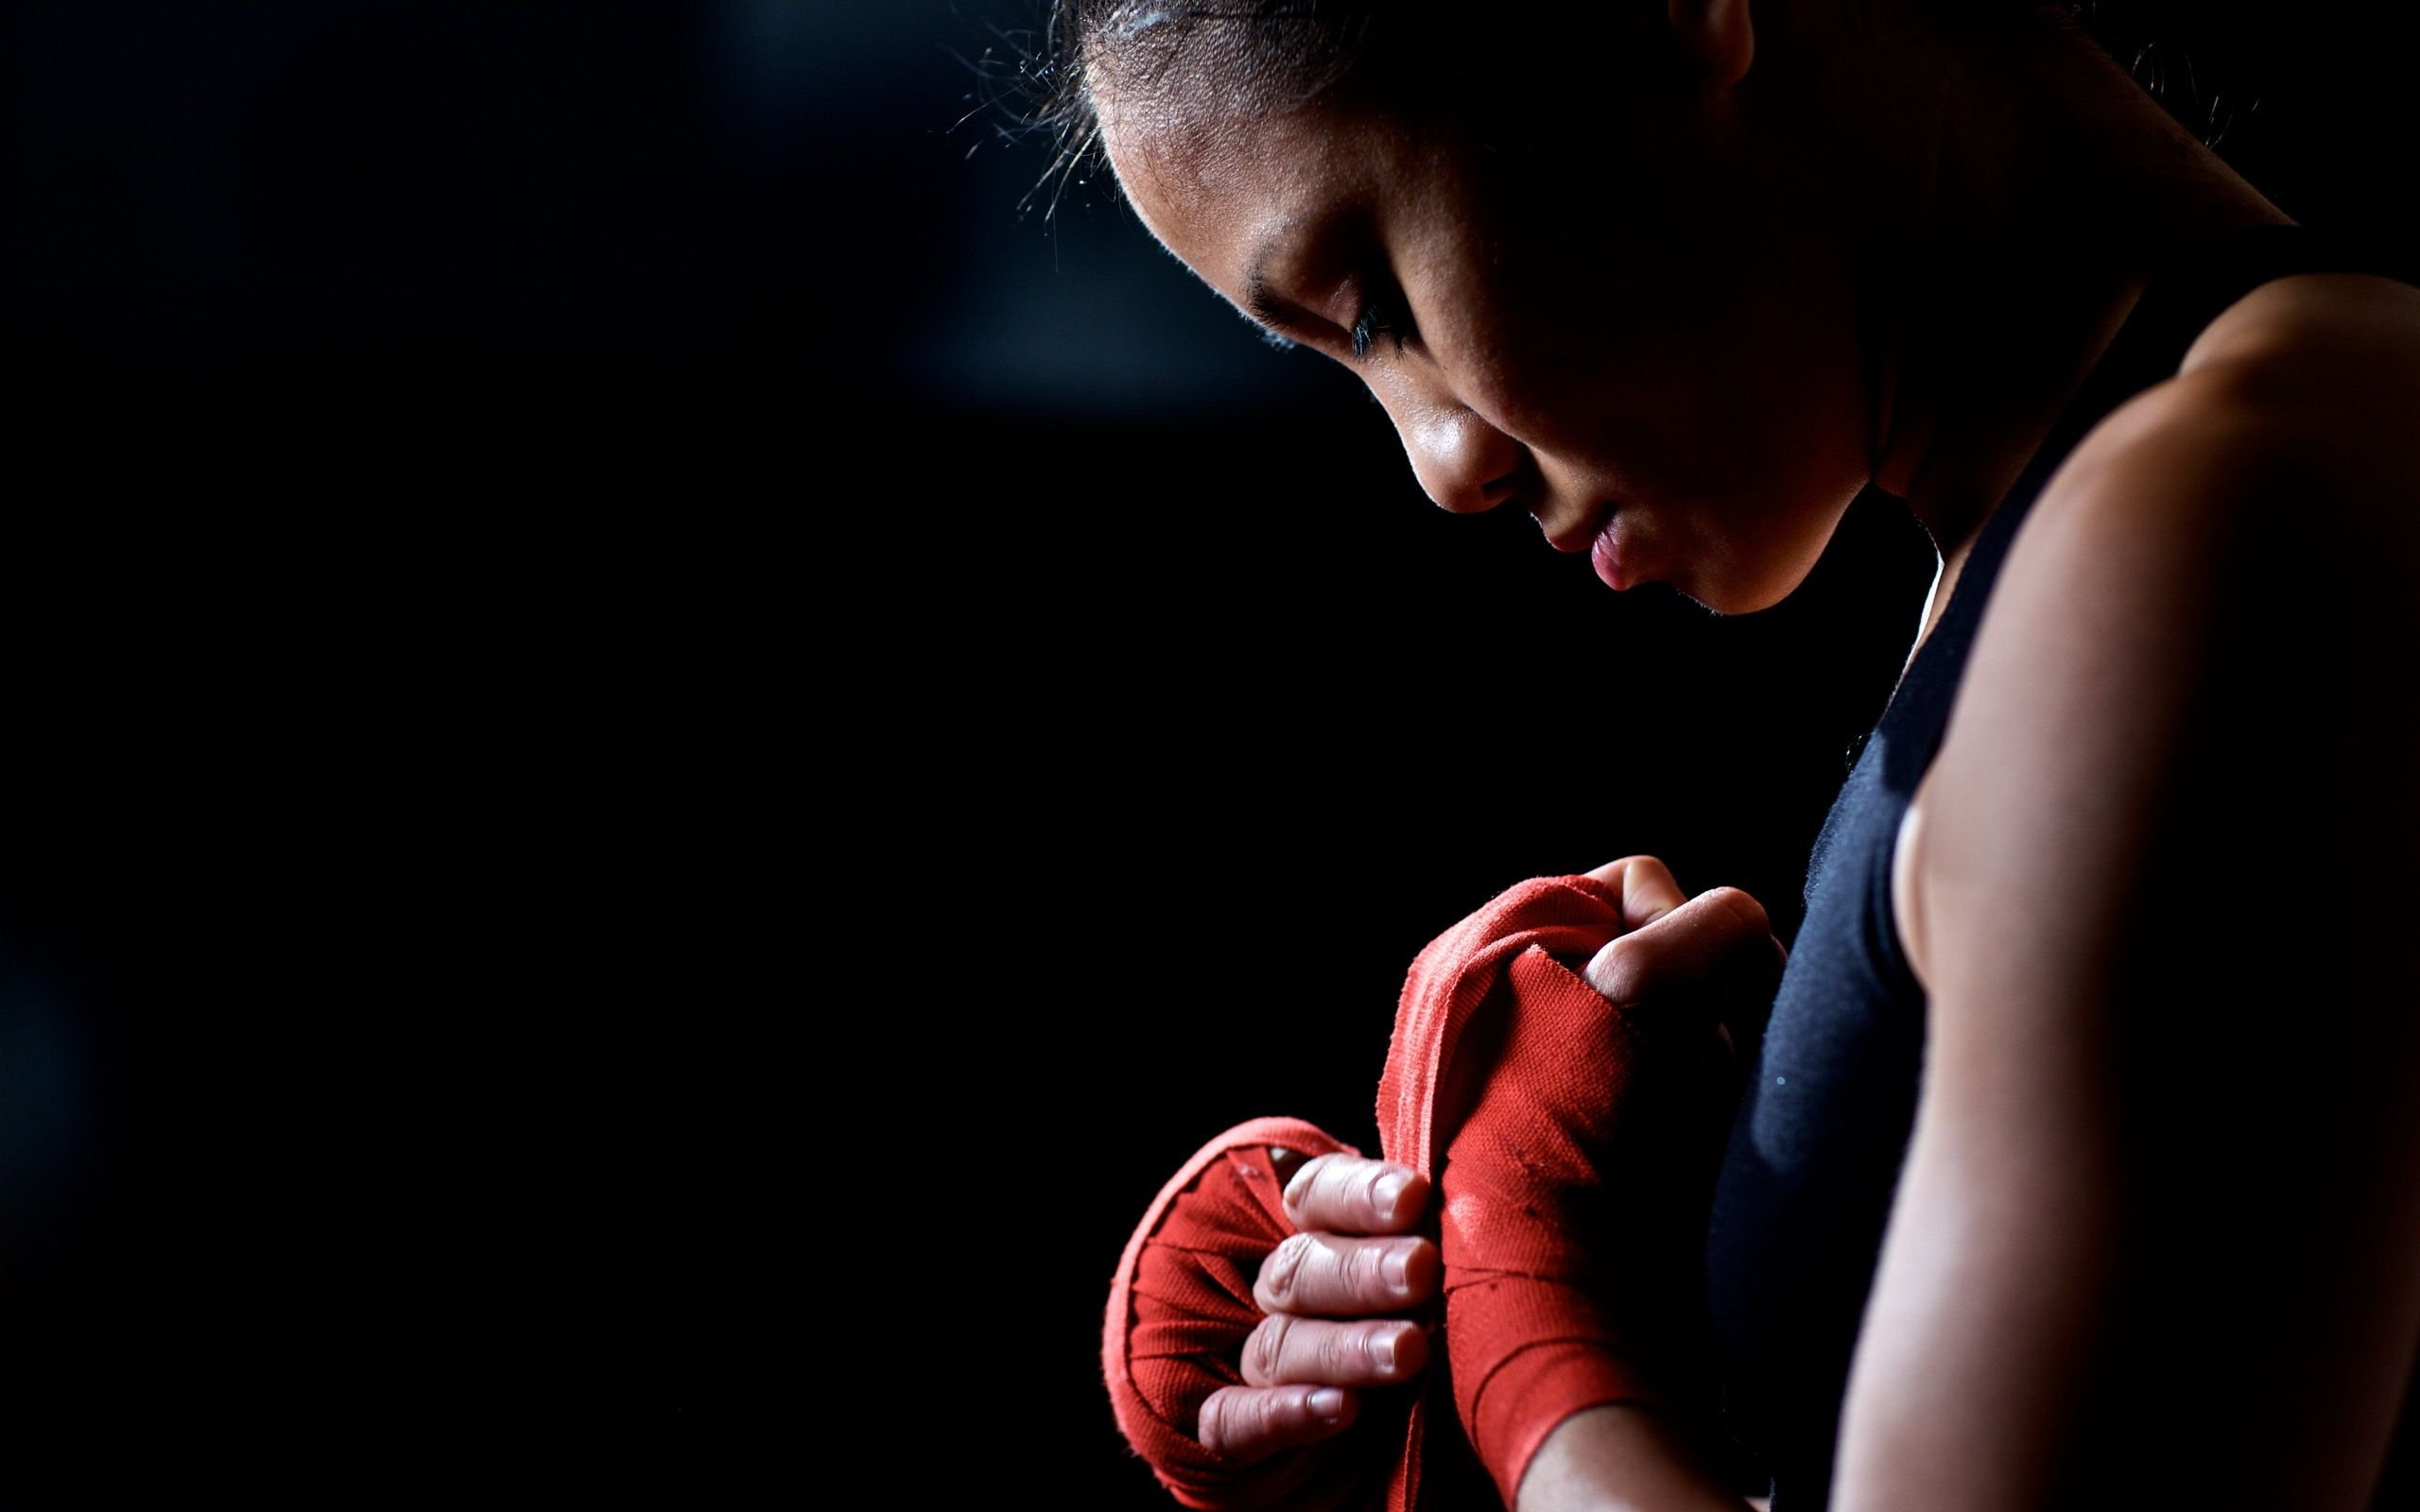 female kickboxing wallpaper kickboxing beneficios del cardio 2560x1600